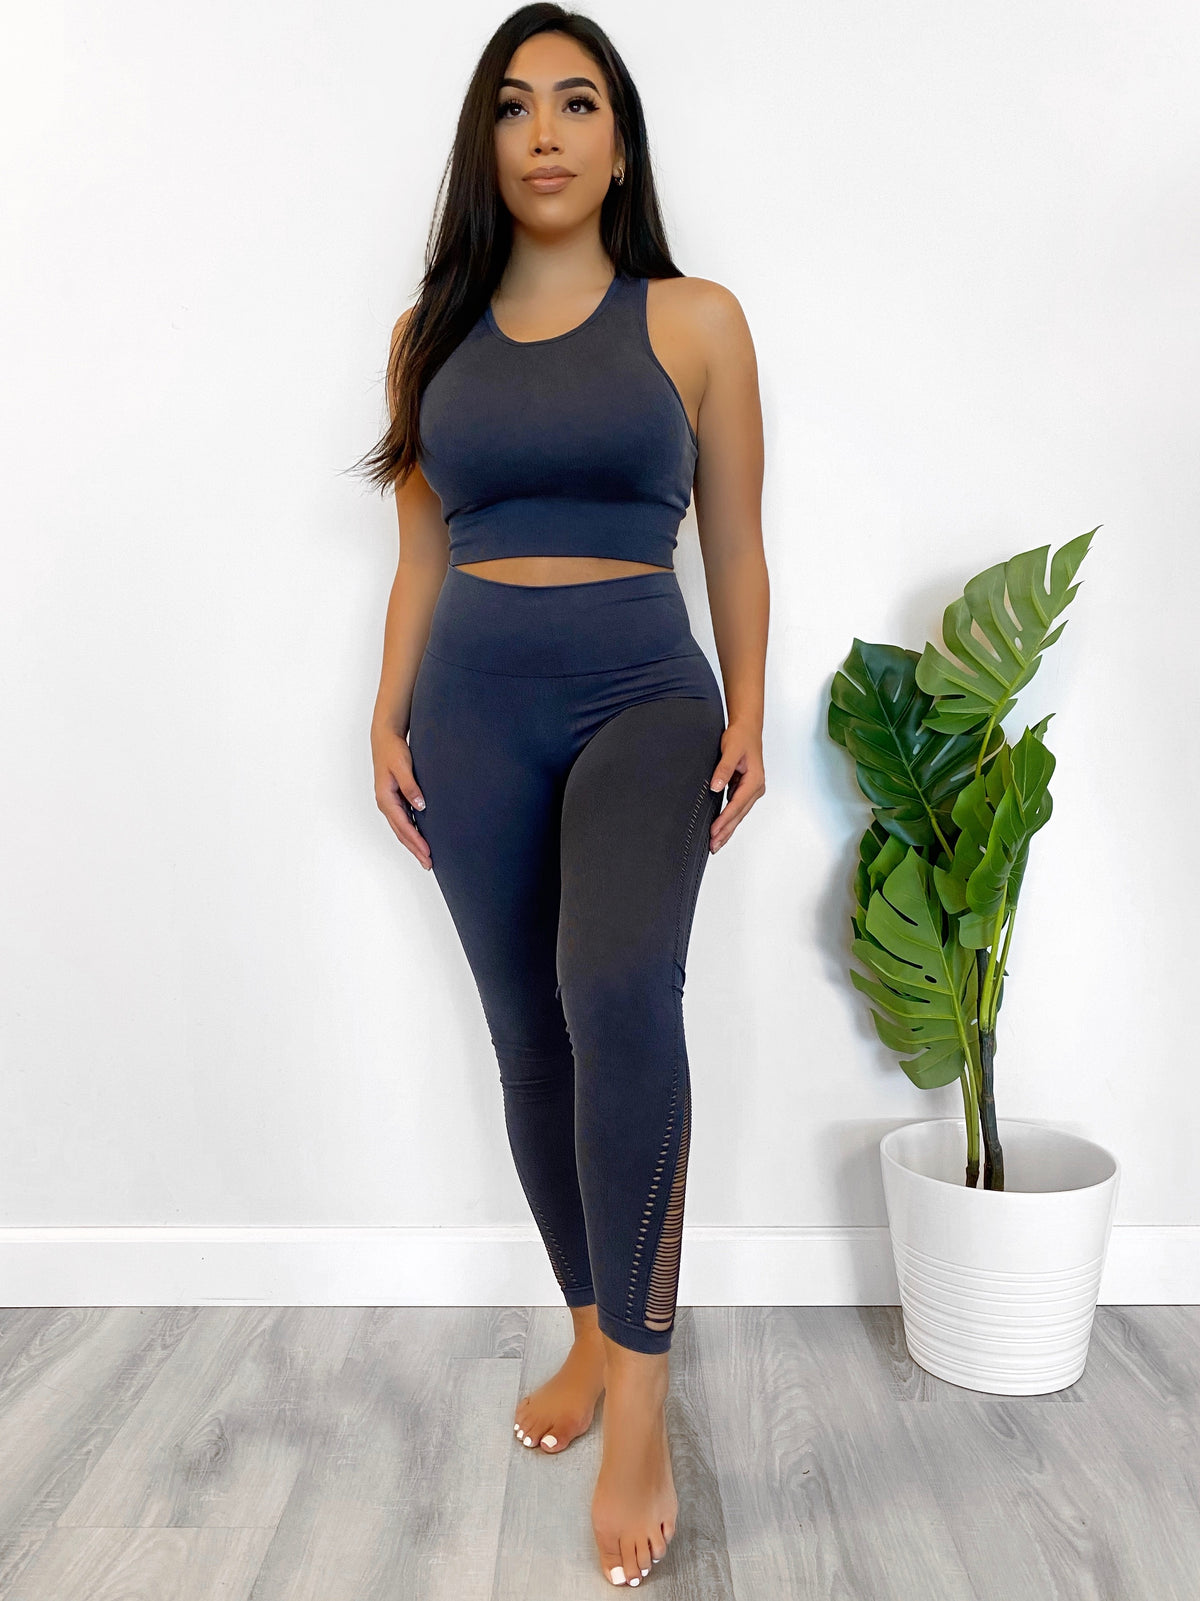 grey spandex 2 piece, sports bra, high waist leggings, cut outs on side